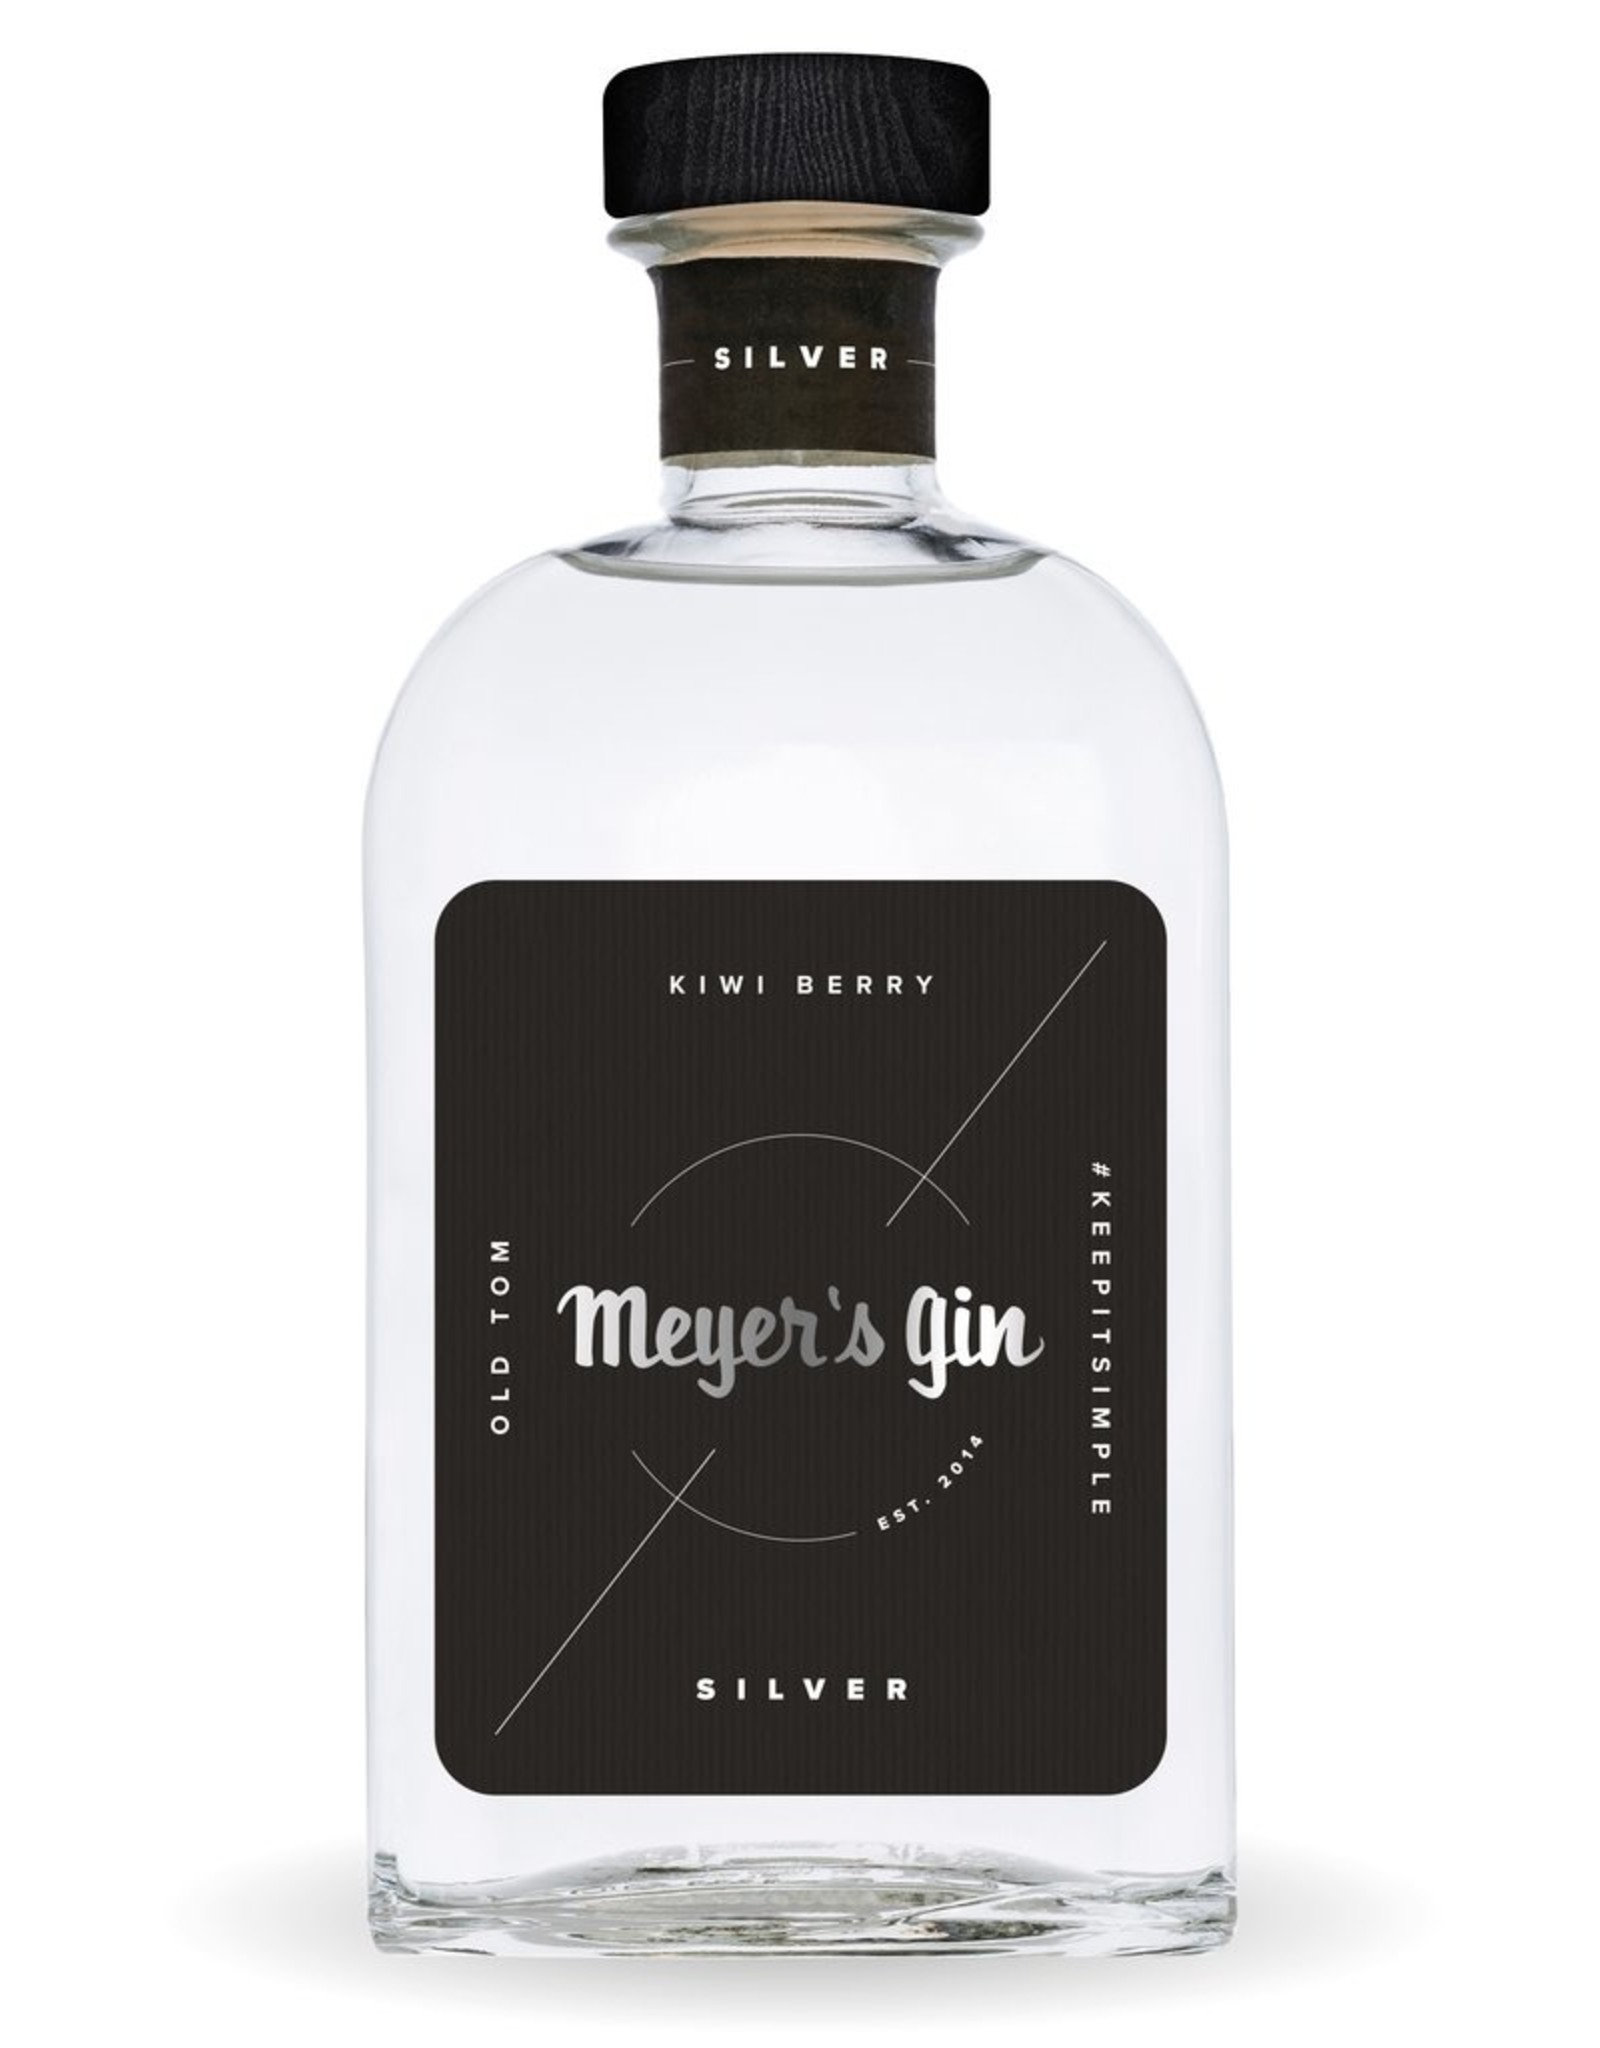 Meyer's gin silver 38% 50cl